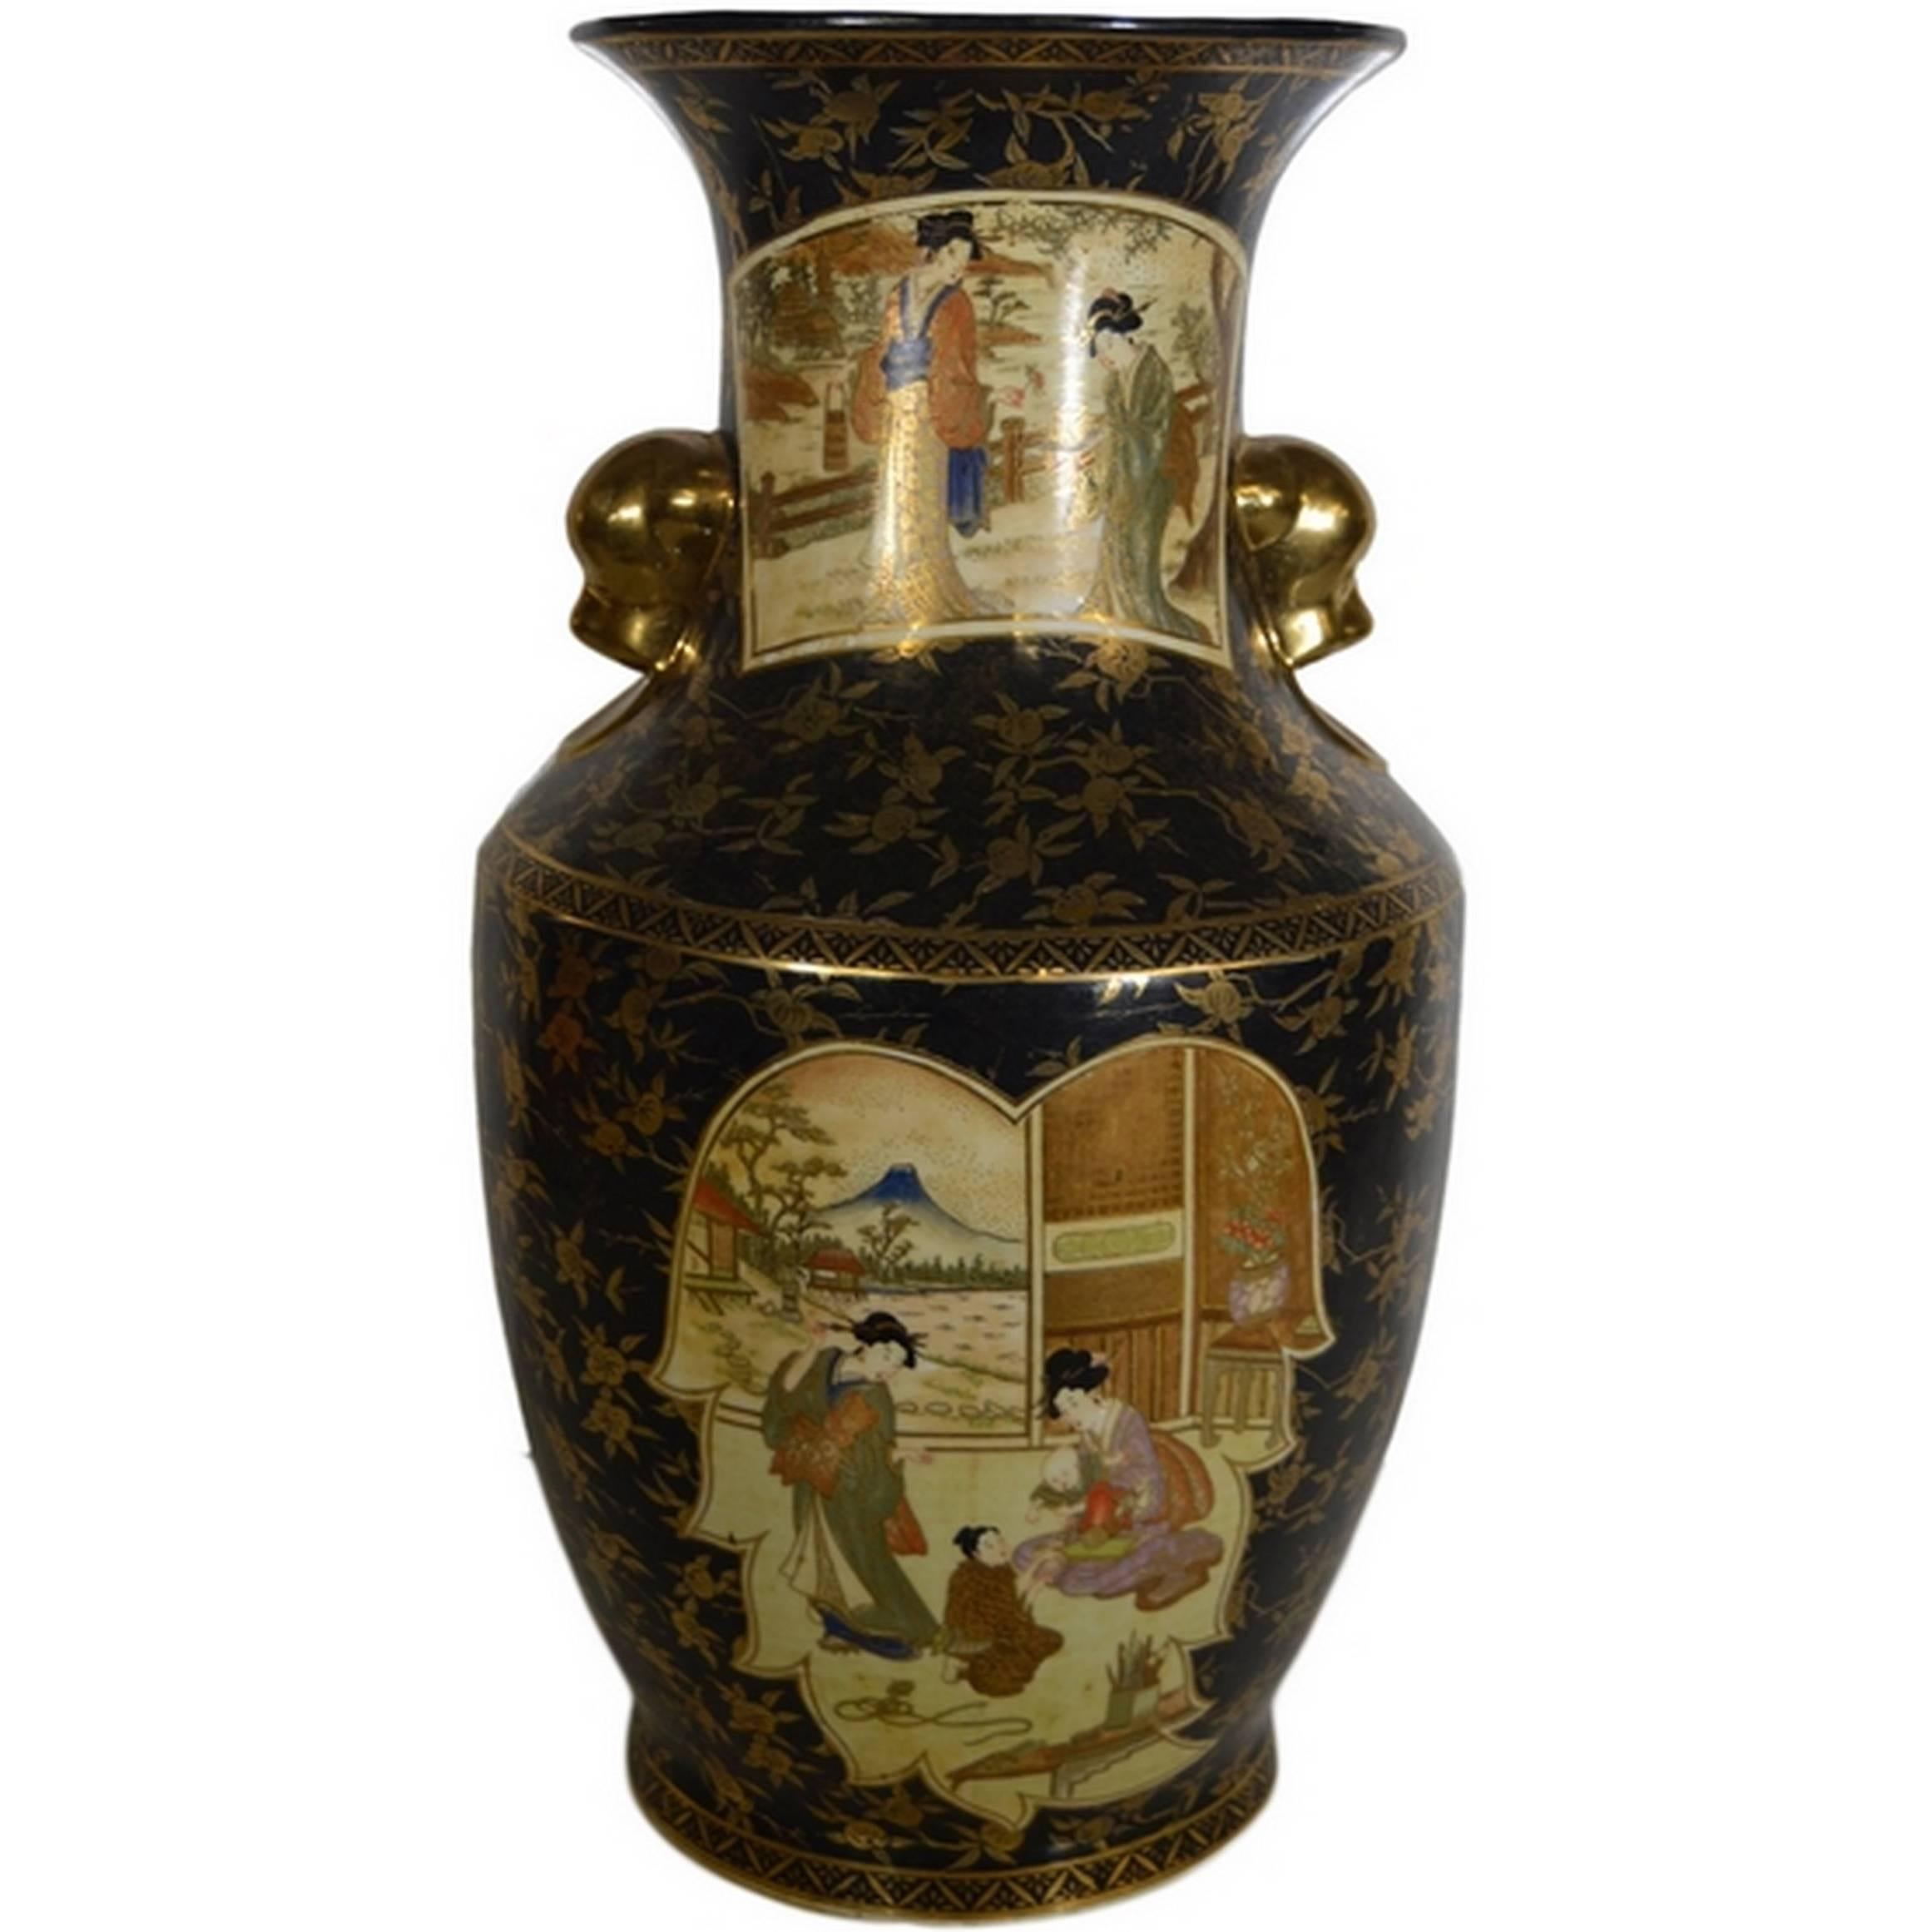 Vintage Hand-Painted Porcelain Vase with Gilded Accents from 20th Century, China